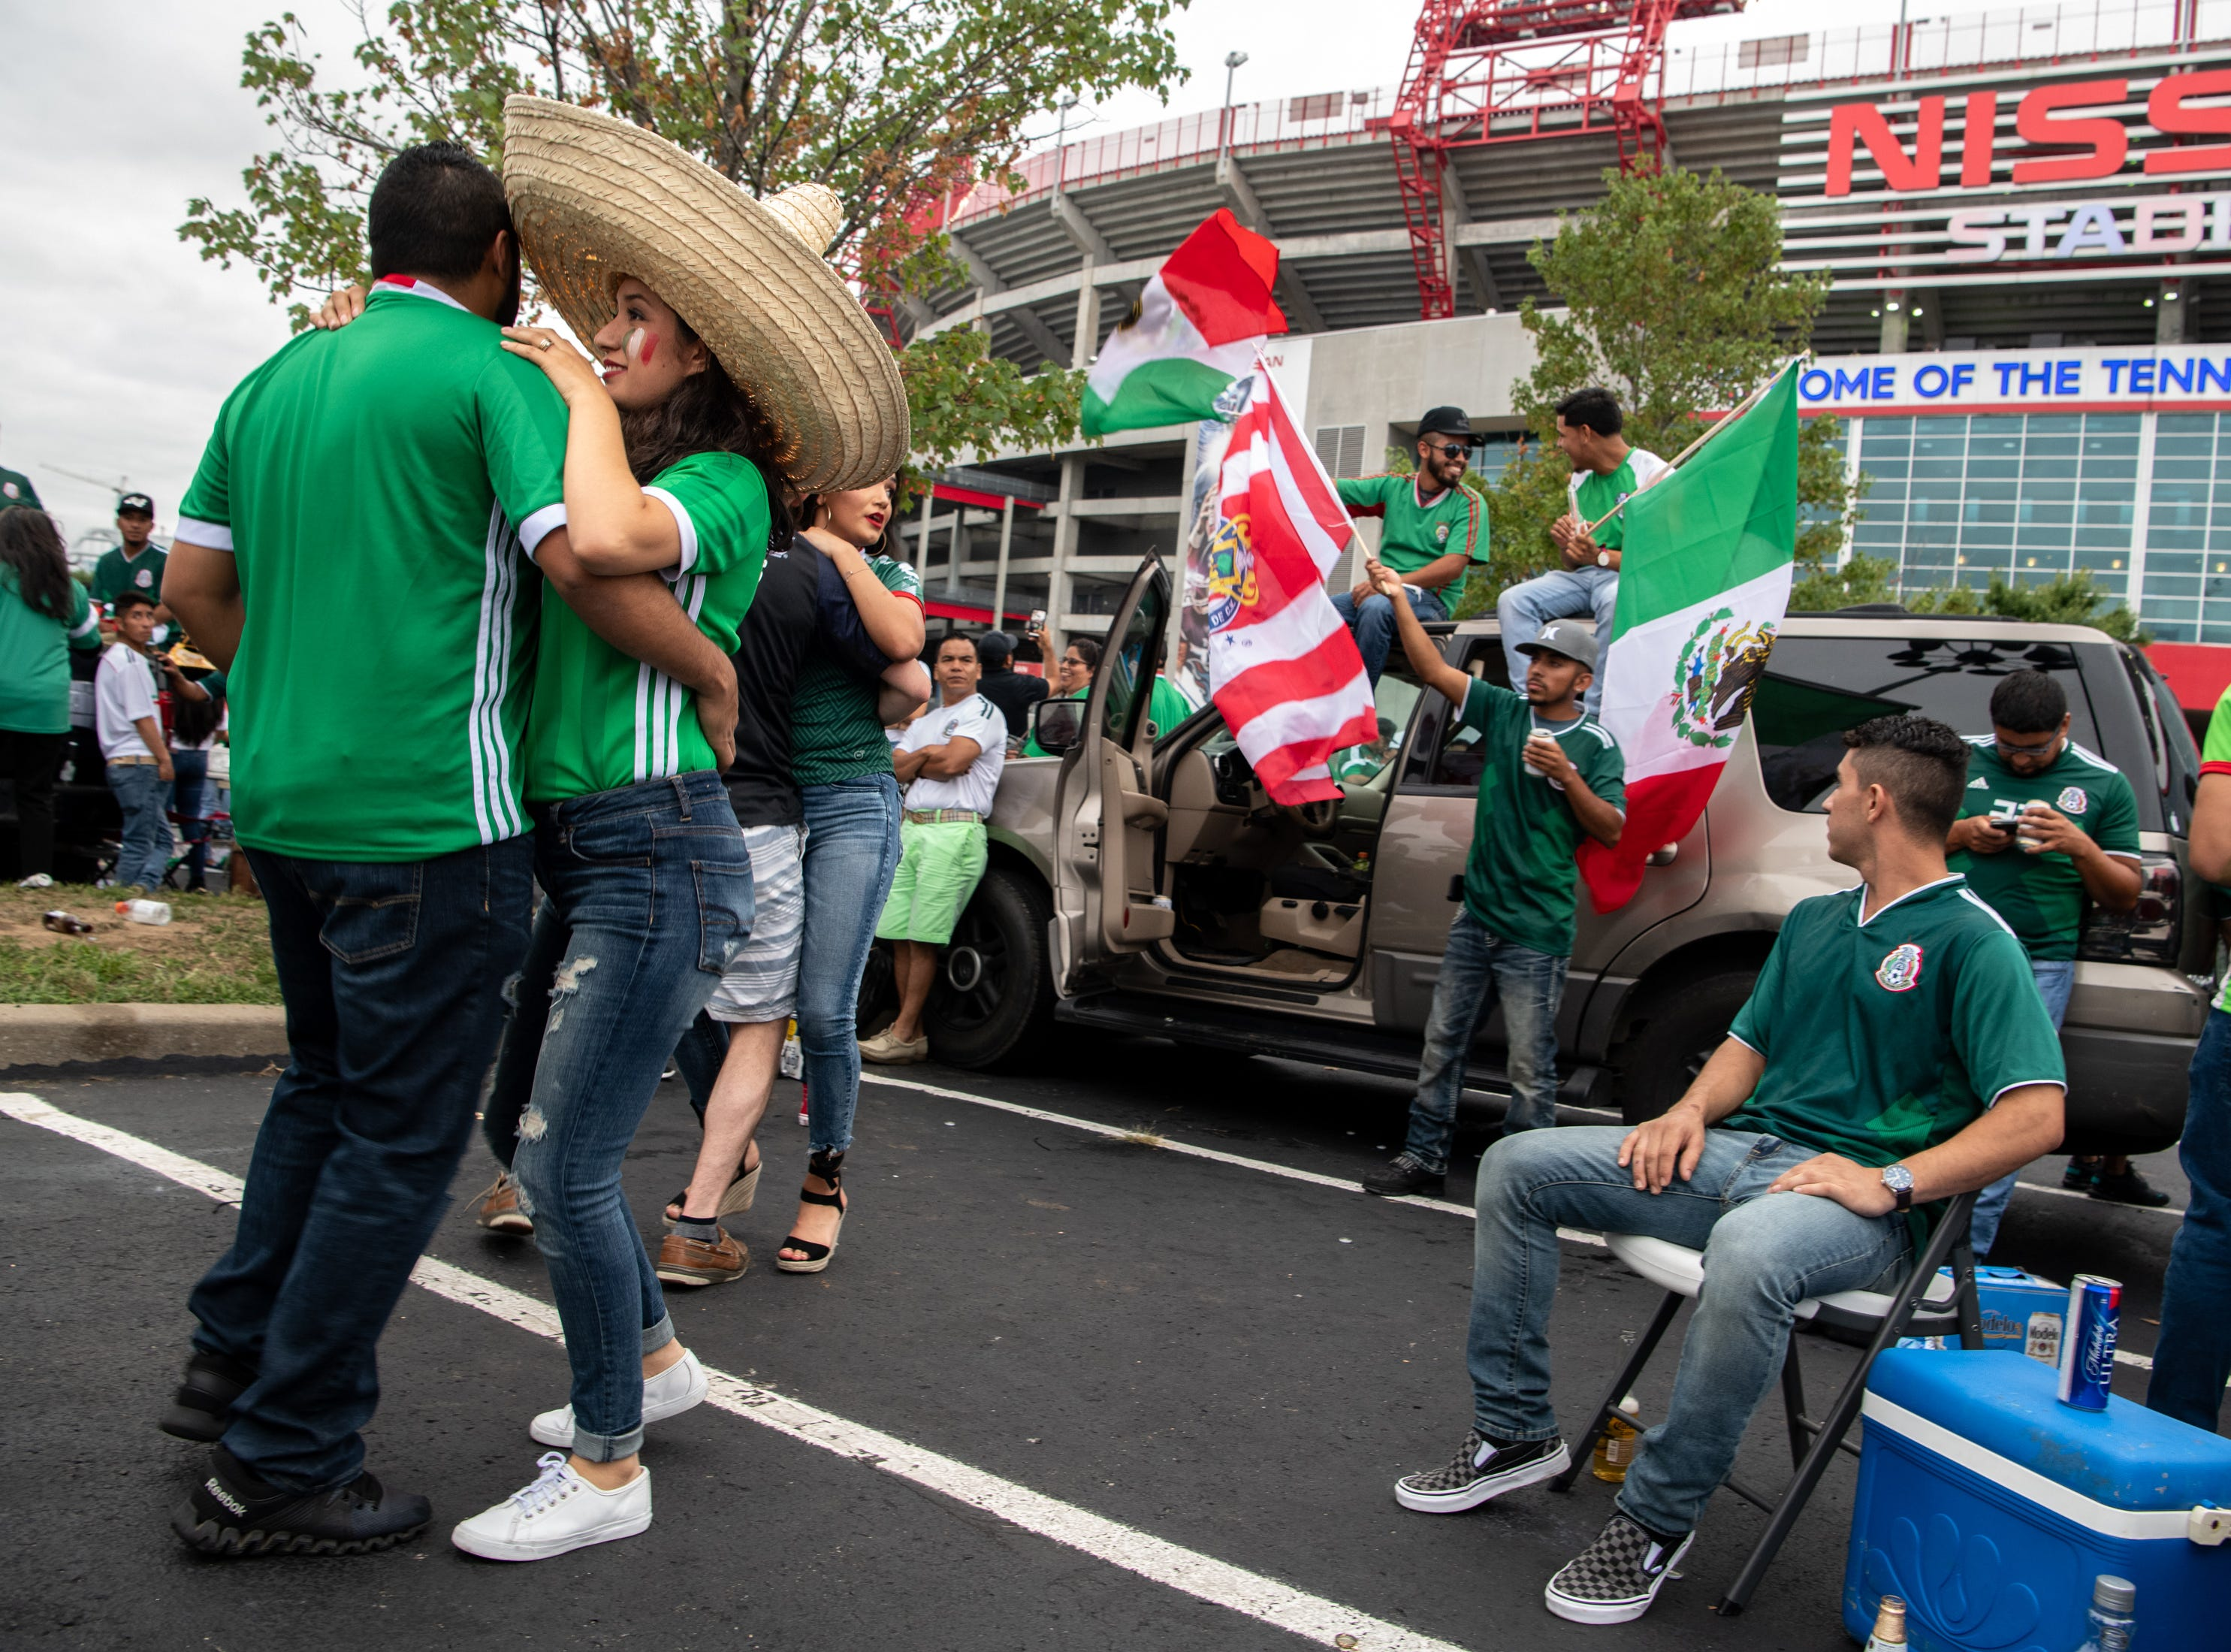 Fans tailgate outside of the stadium before the game between USA and Mexico at Nissan Stadium in Nashville, Tenn., Tuesday, Sept. 11, 2018.